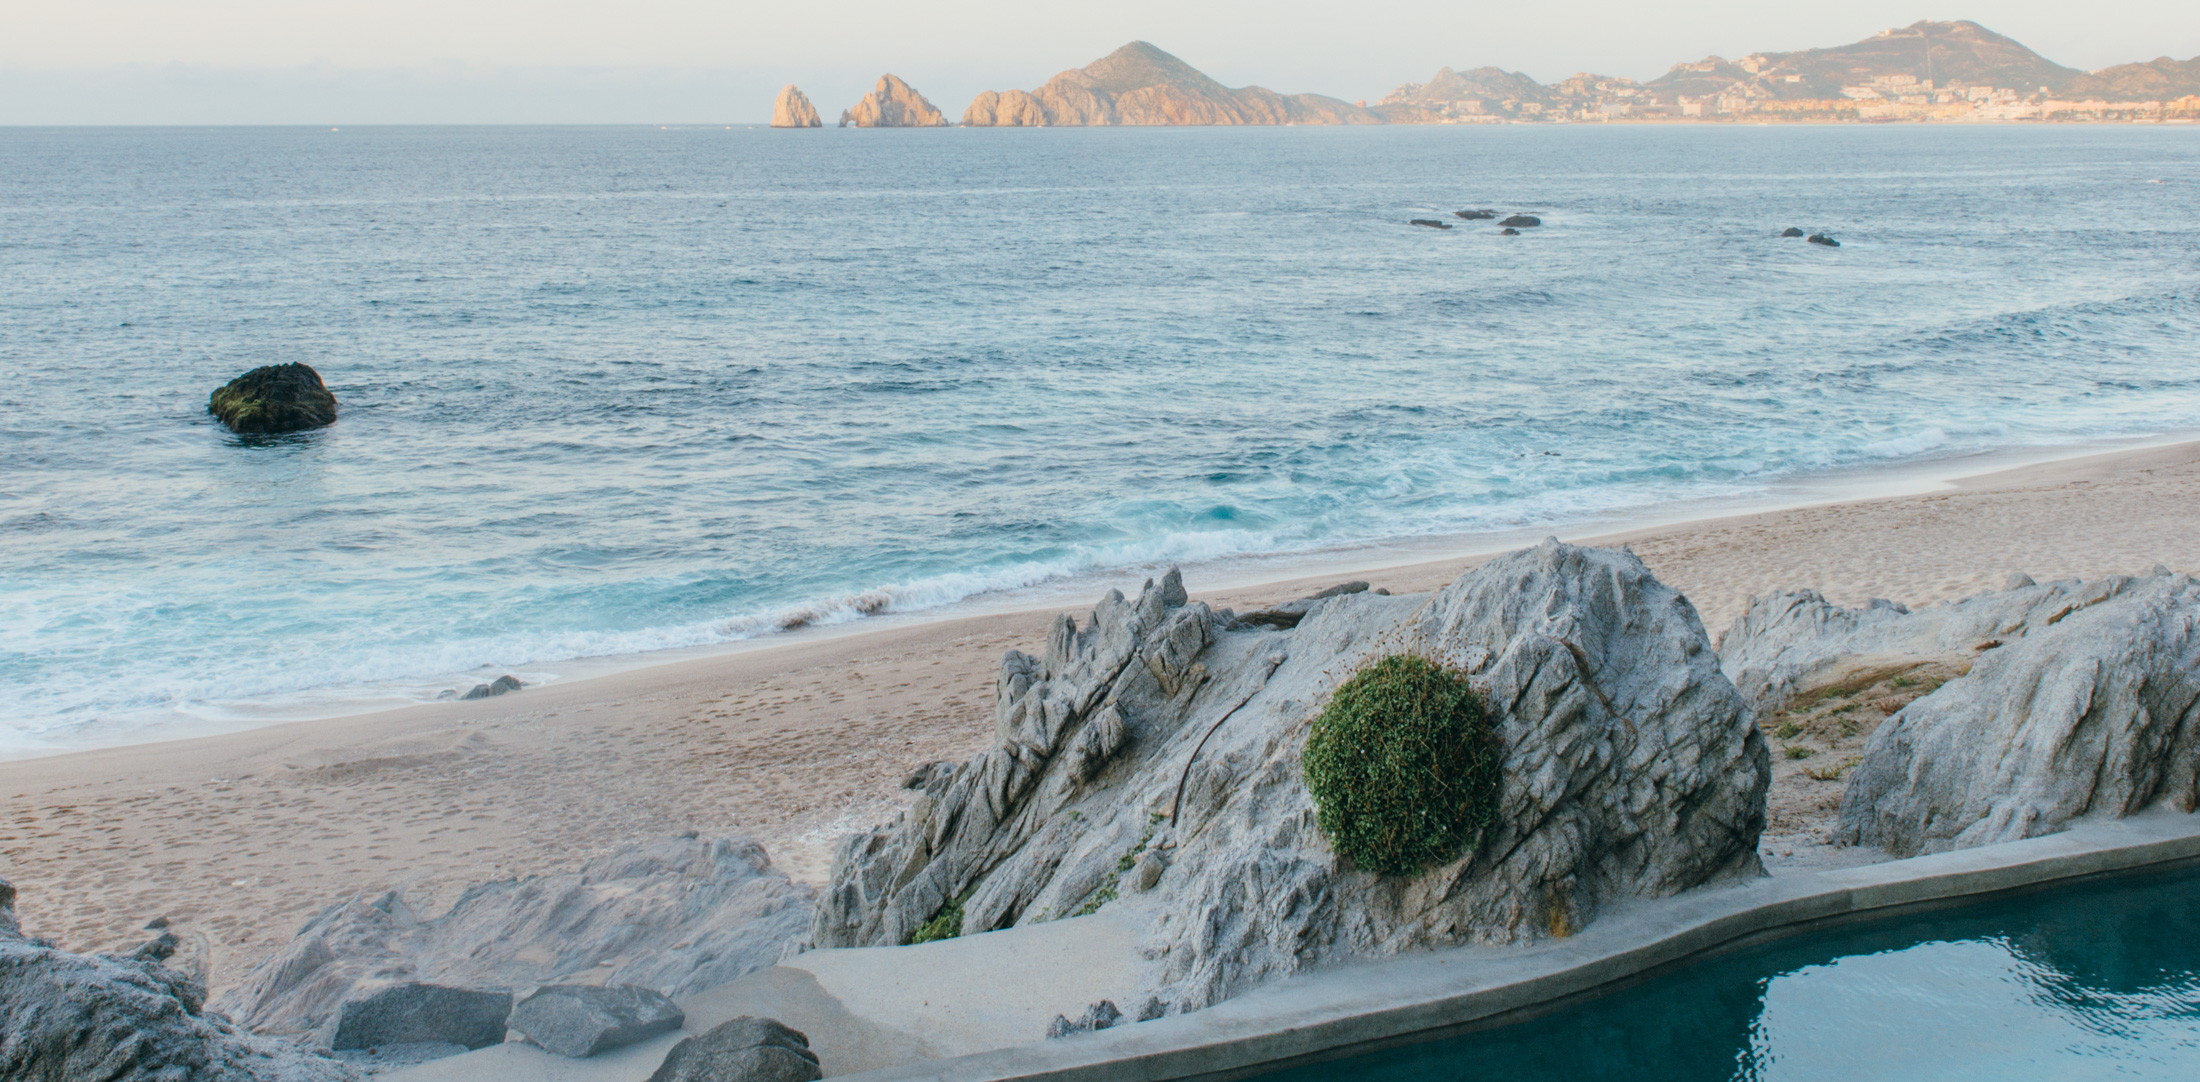 Visit Cabos